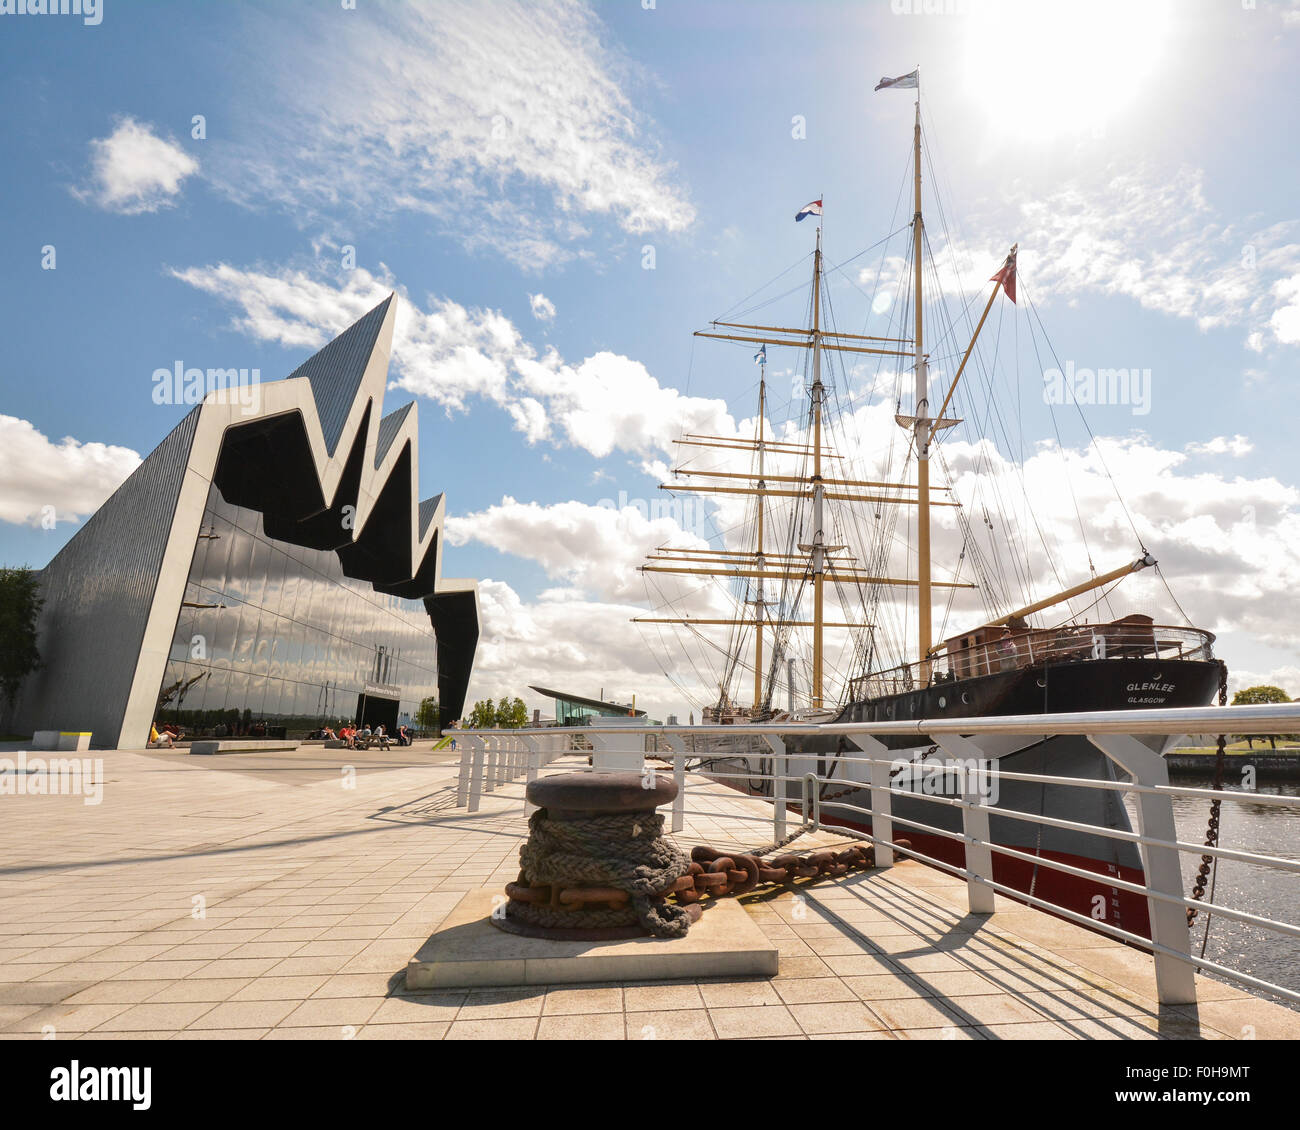 The Tall Ship moored outside the Riverside Museum, Glasgow, Scotland, UK - Stock Image